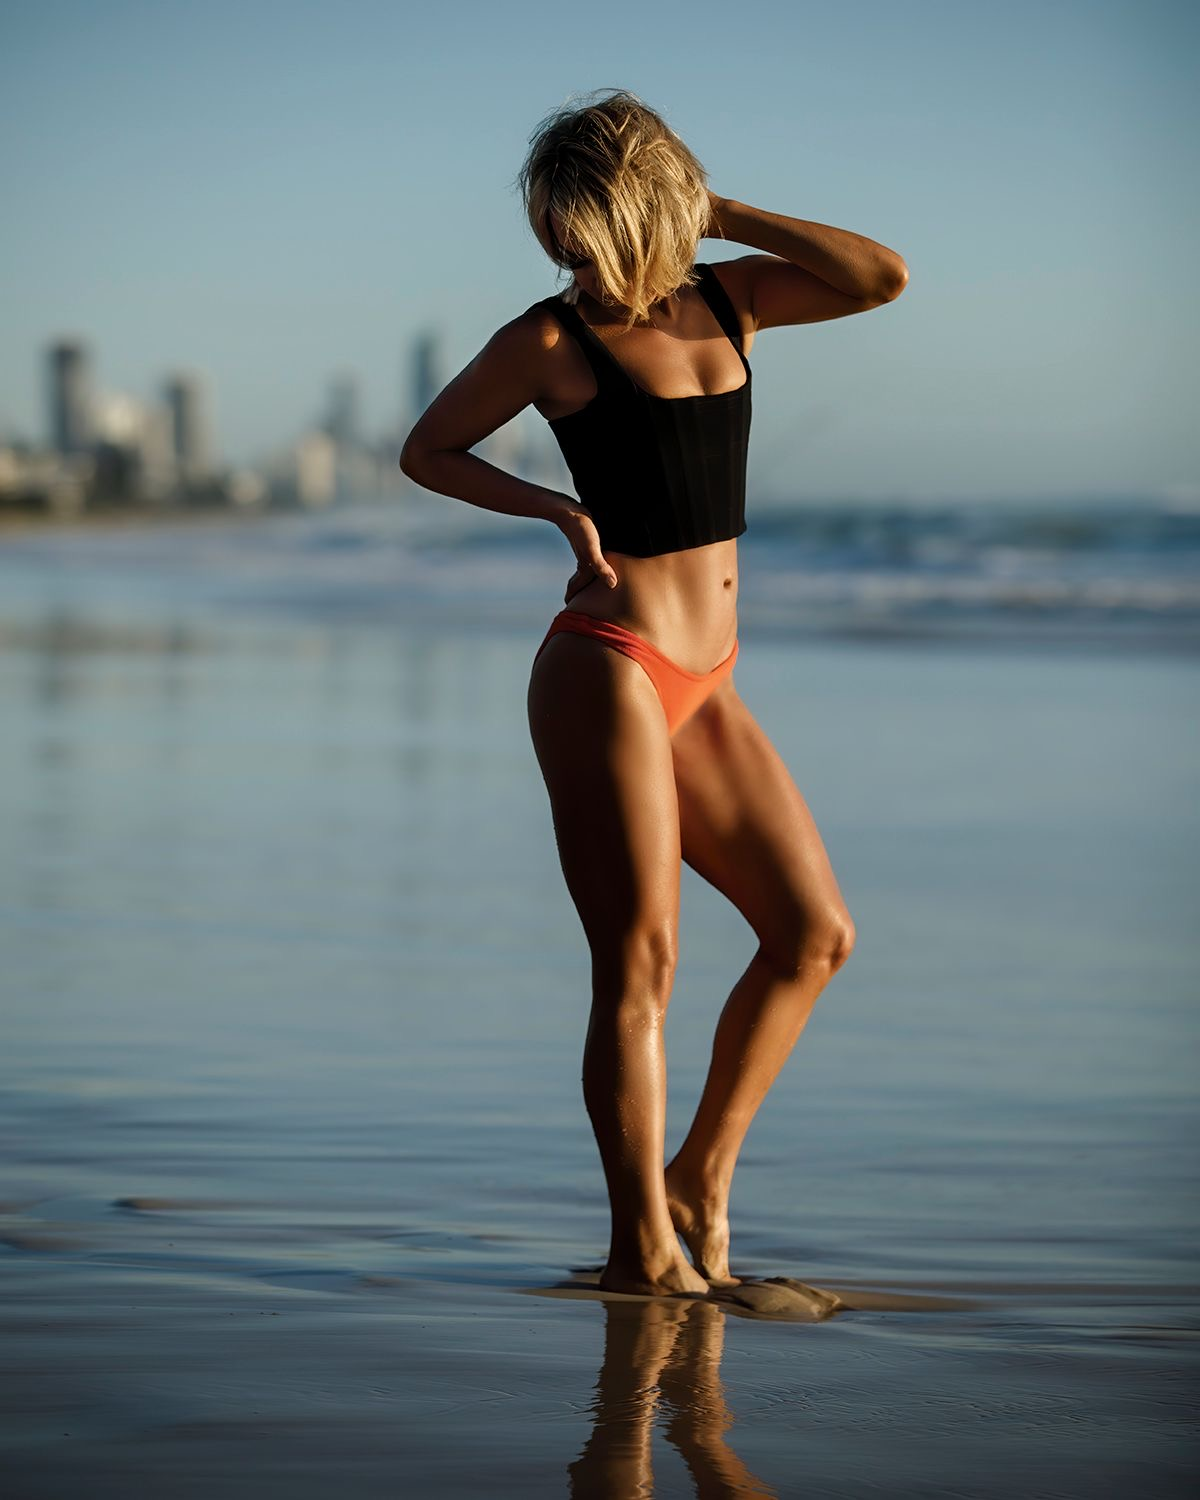 Queensland fitness model posing on the sand